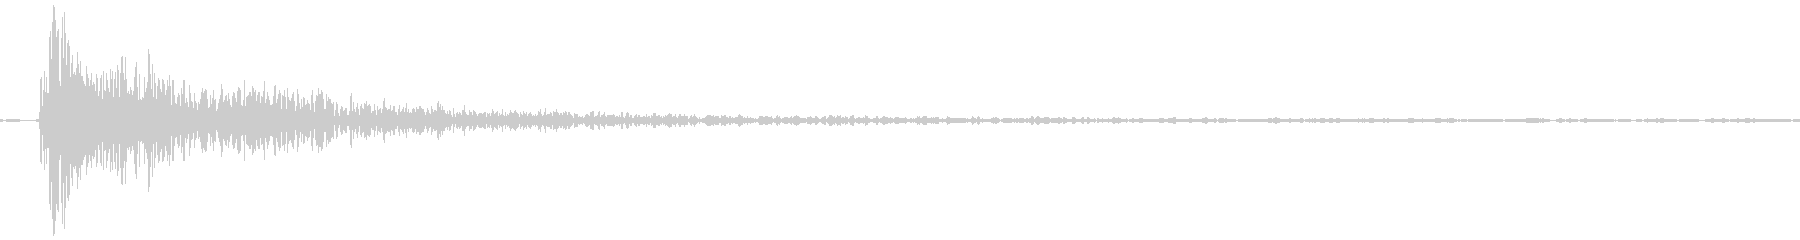 Garn (tapping a slimy iron plate 2)'s unreproduced waveform